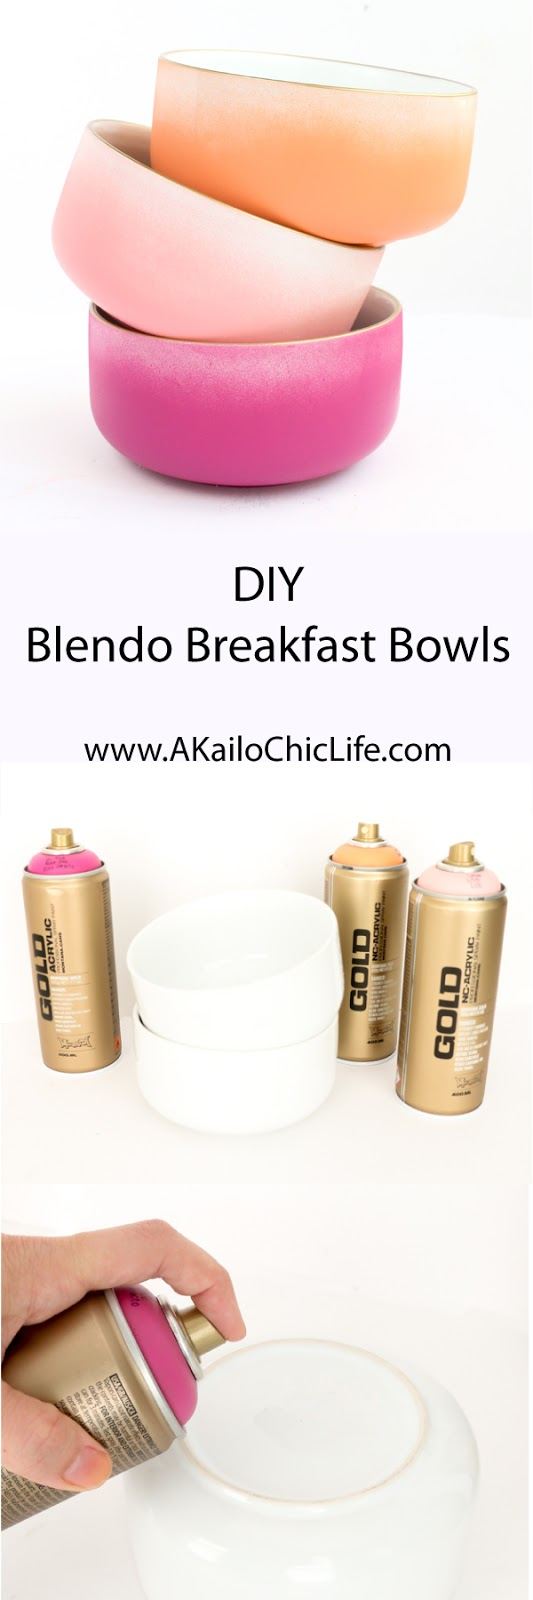 DIY Ombre Blendo Bowls - Craft cereal bowls - spray paint - montana gold spray paint - gold rimmed glasses - Ombre bowls - blendo bowls - DIY Blendo - Kitchen decor - target threshold bowls